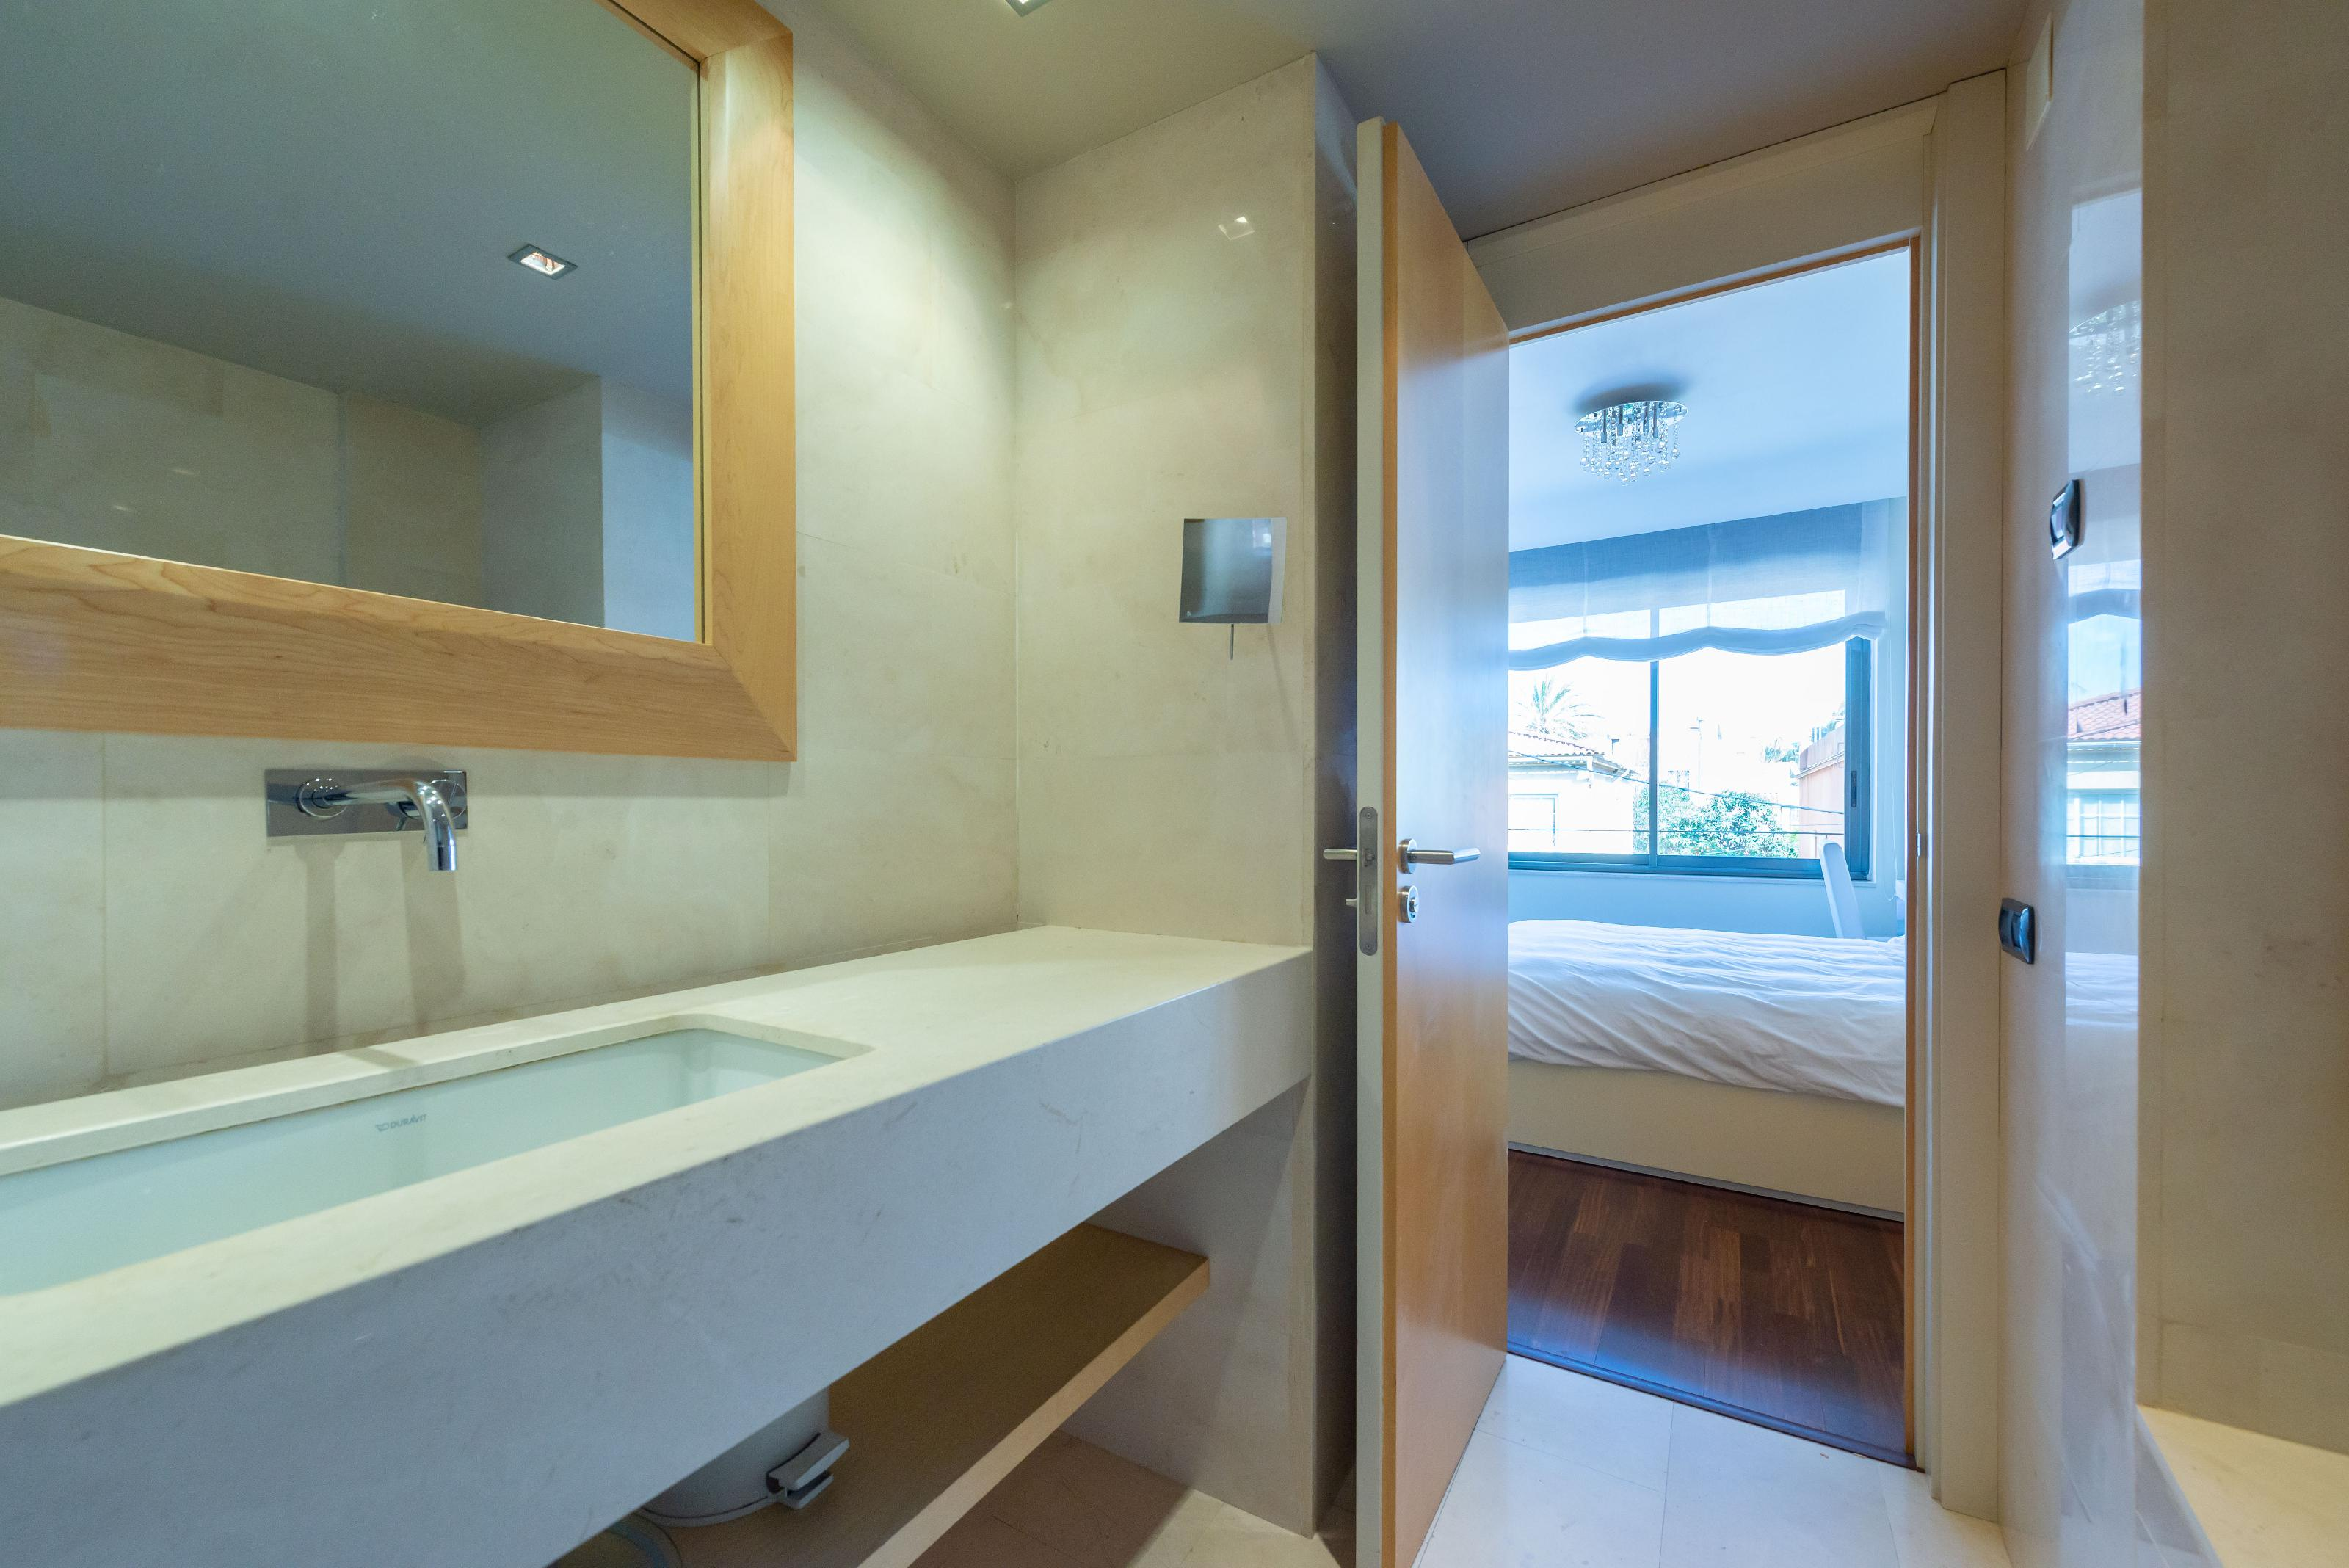 246682 Flat for sale in Gràcia, Vallcarca and Els Penitents 10